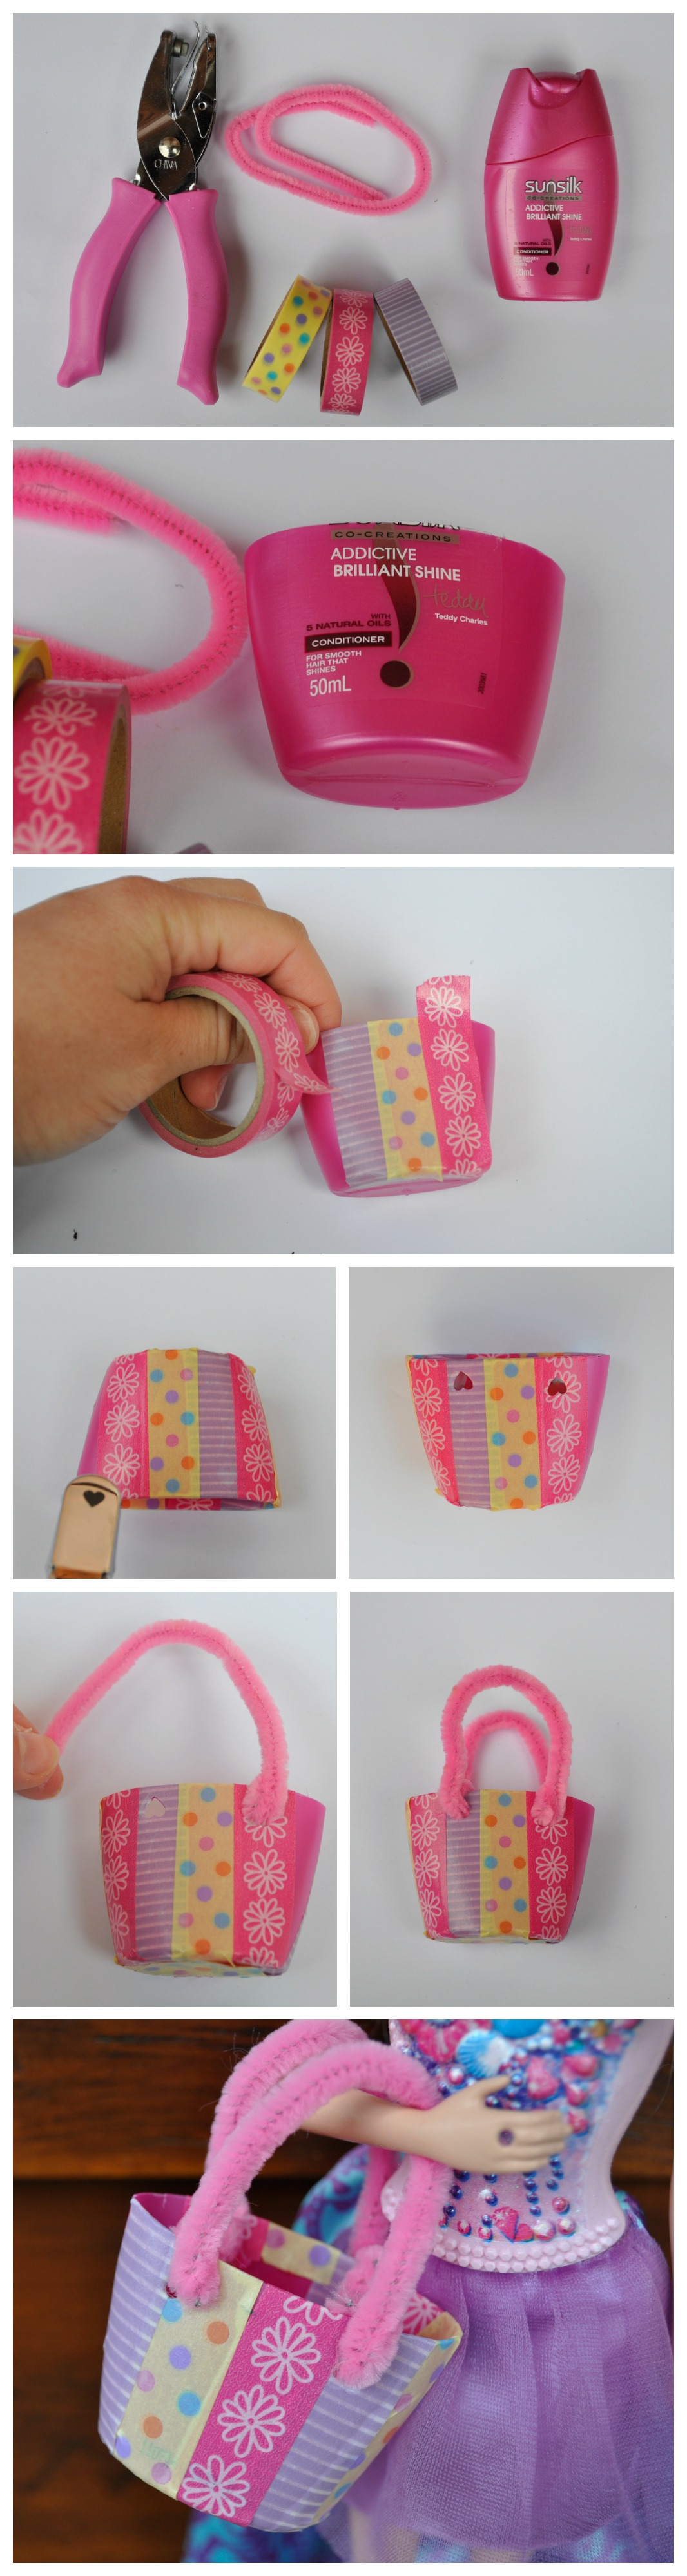 Make a Barbie Tote bag (that fits in a lot of cute things inside) out of a small bottle